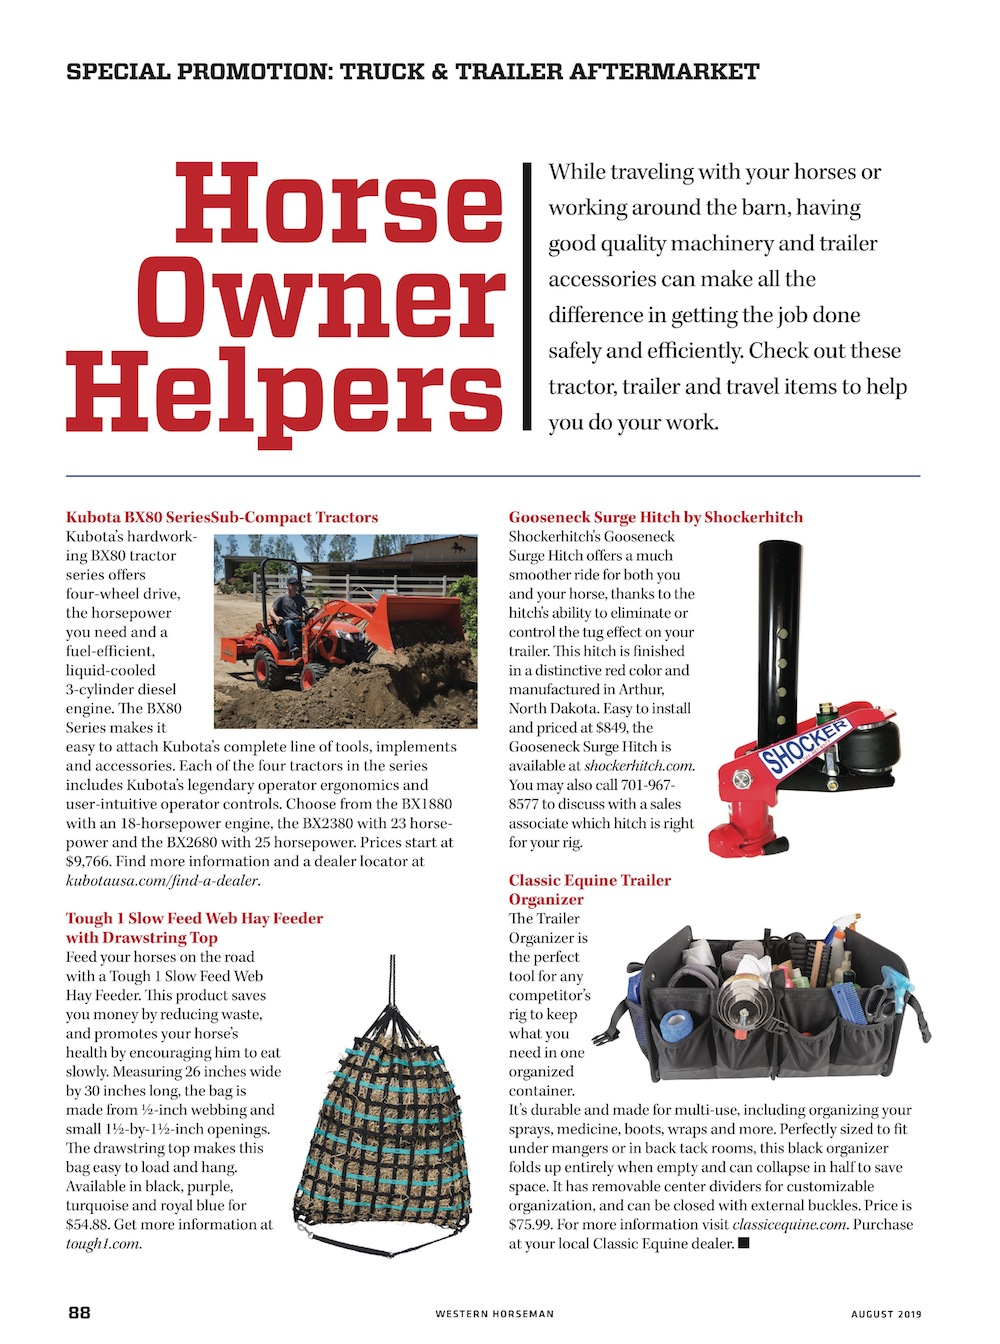 special promotion section in Western Horseman on tractor, trailer and travel items